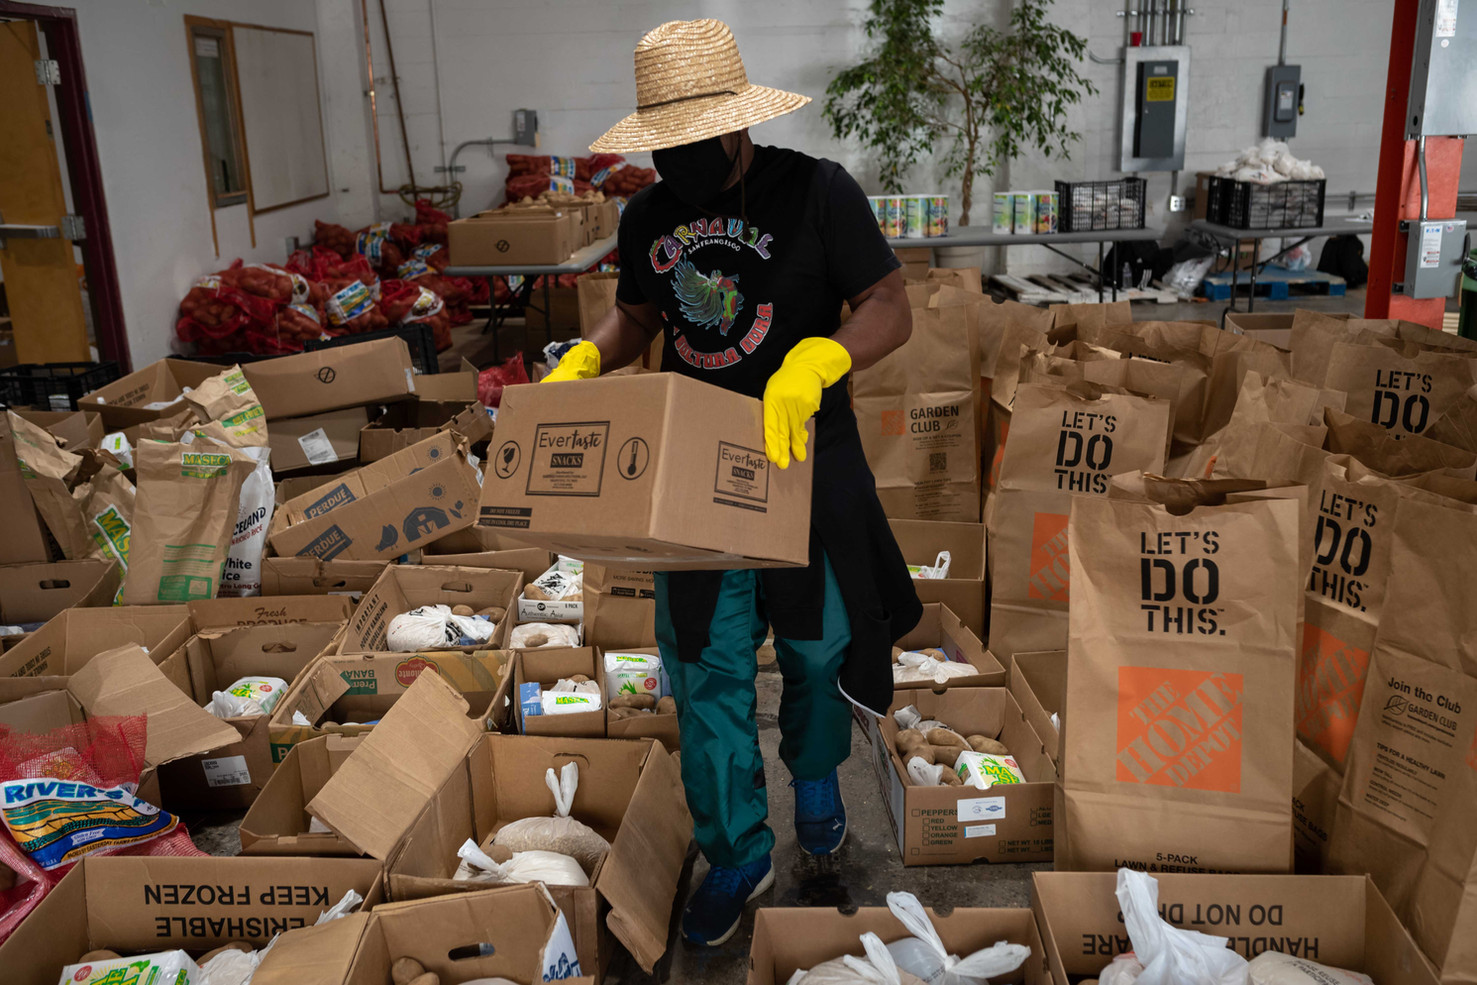 Tadd Scott, a teacher at Mission Highschool, volunteers to distribute food to hard hit community members at Latino Task Force Resource Hub. The Hub provides weekly testing, food distribution, and essential services such as employment and housing resources.